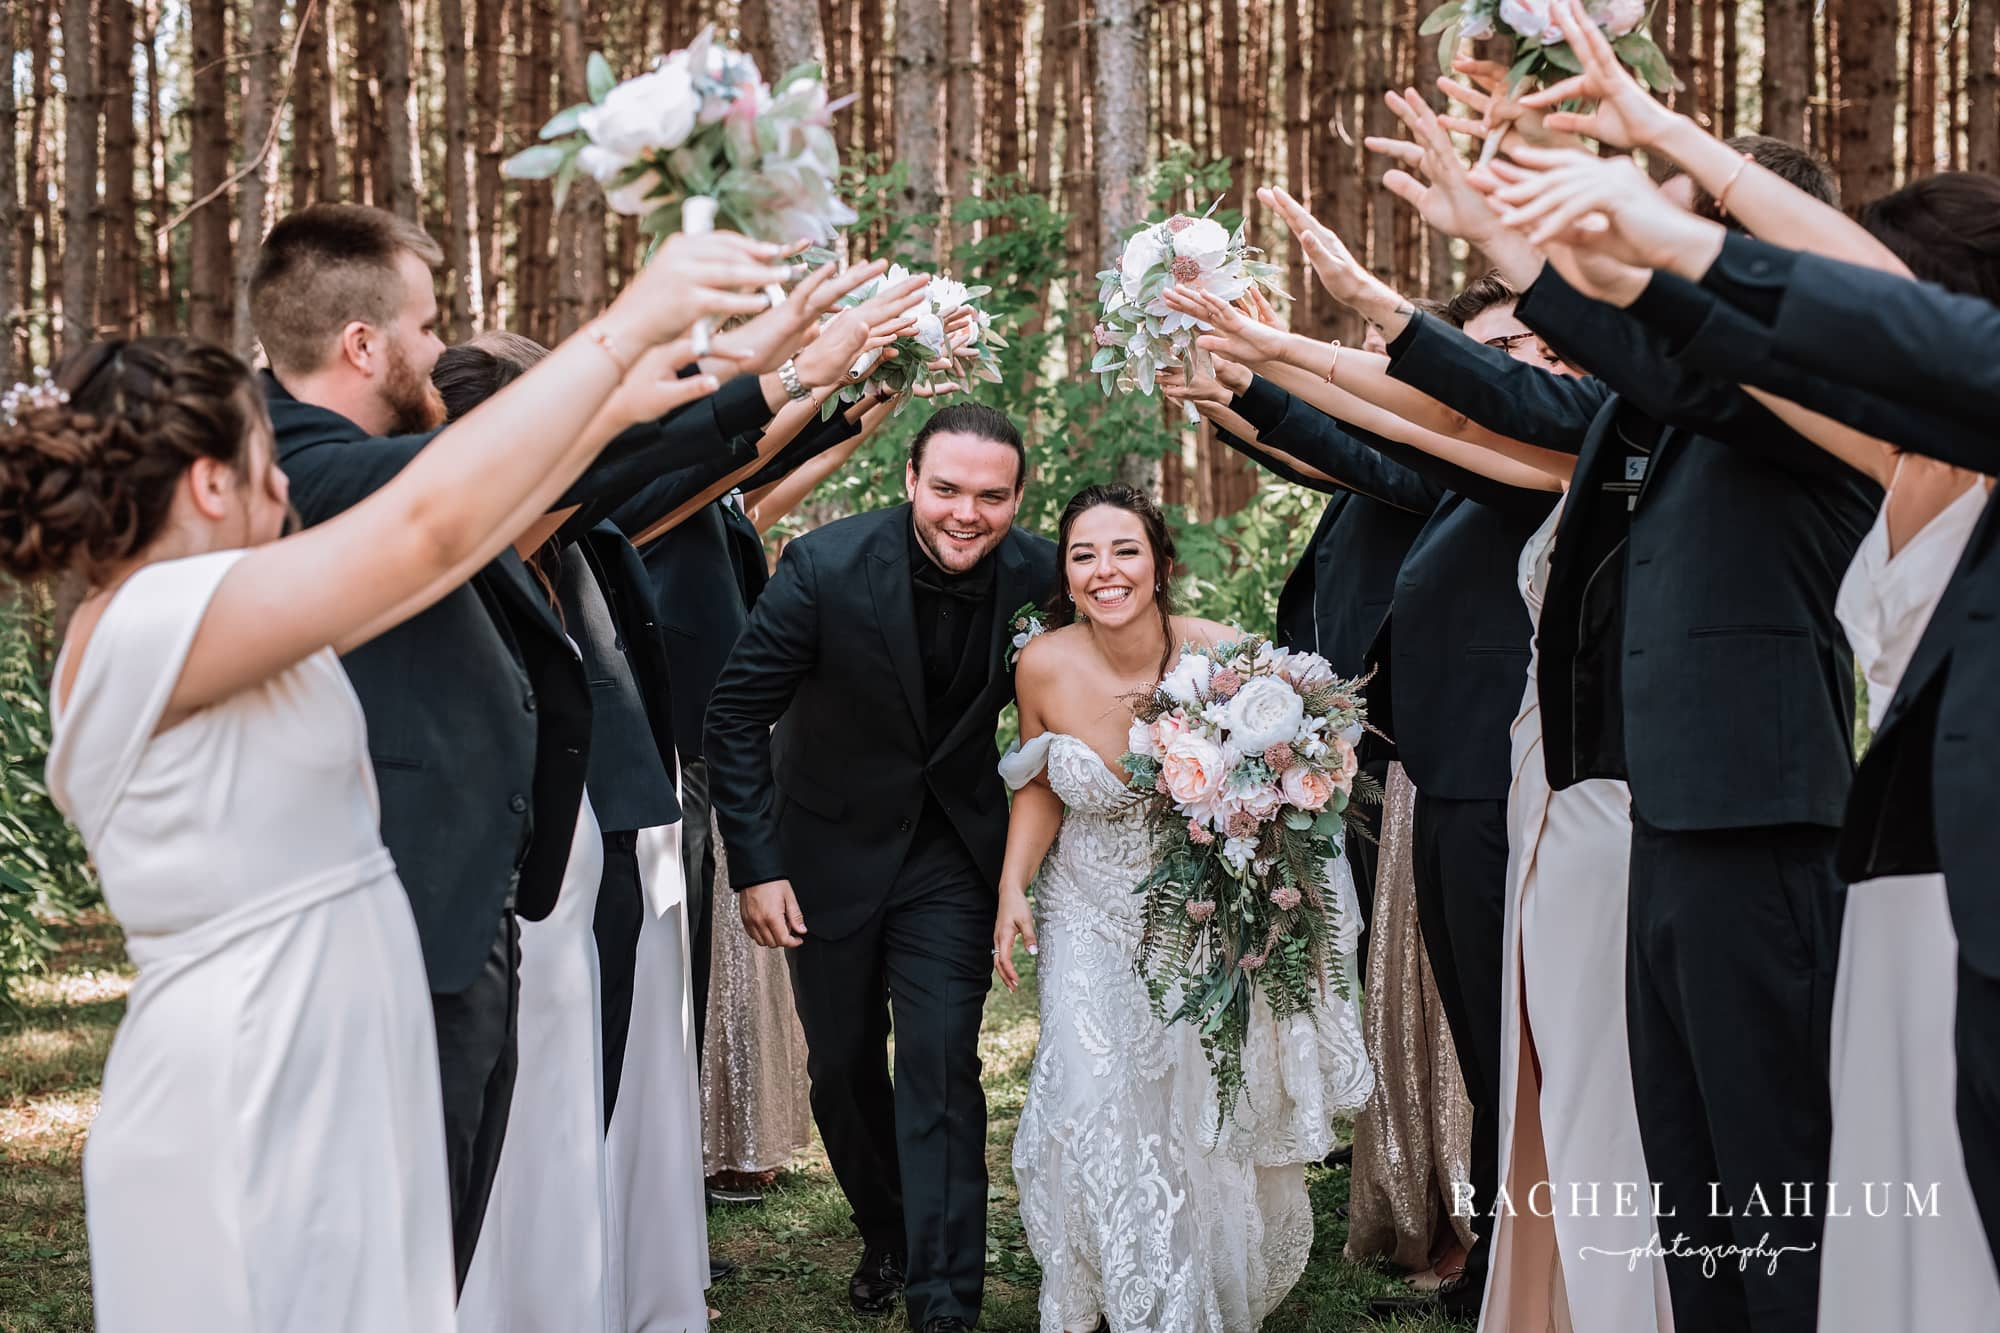 Bride and groom walk through a tunnel of bridesmaids and groomsmen at the Wilderness Wedding Barn in Bigfork, Minnesota.